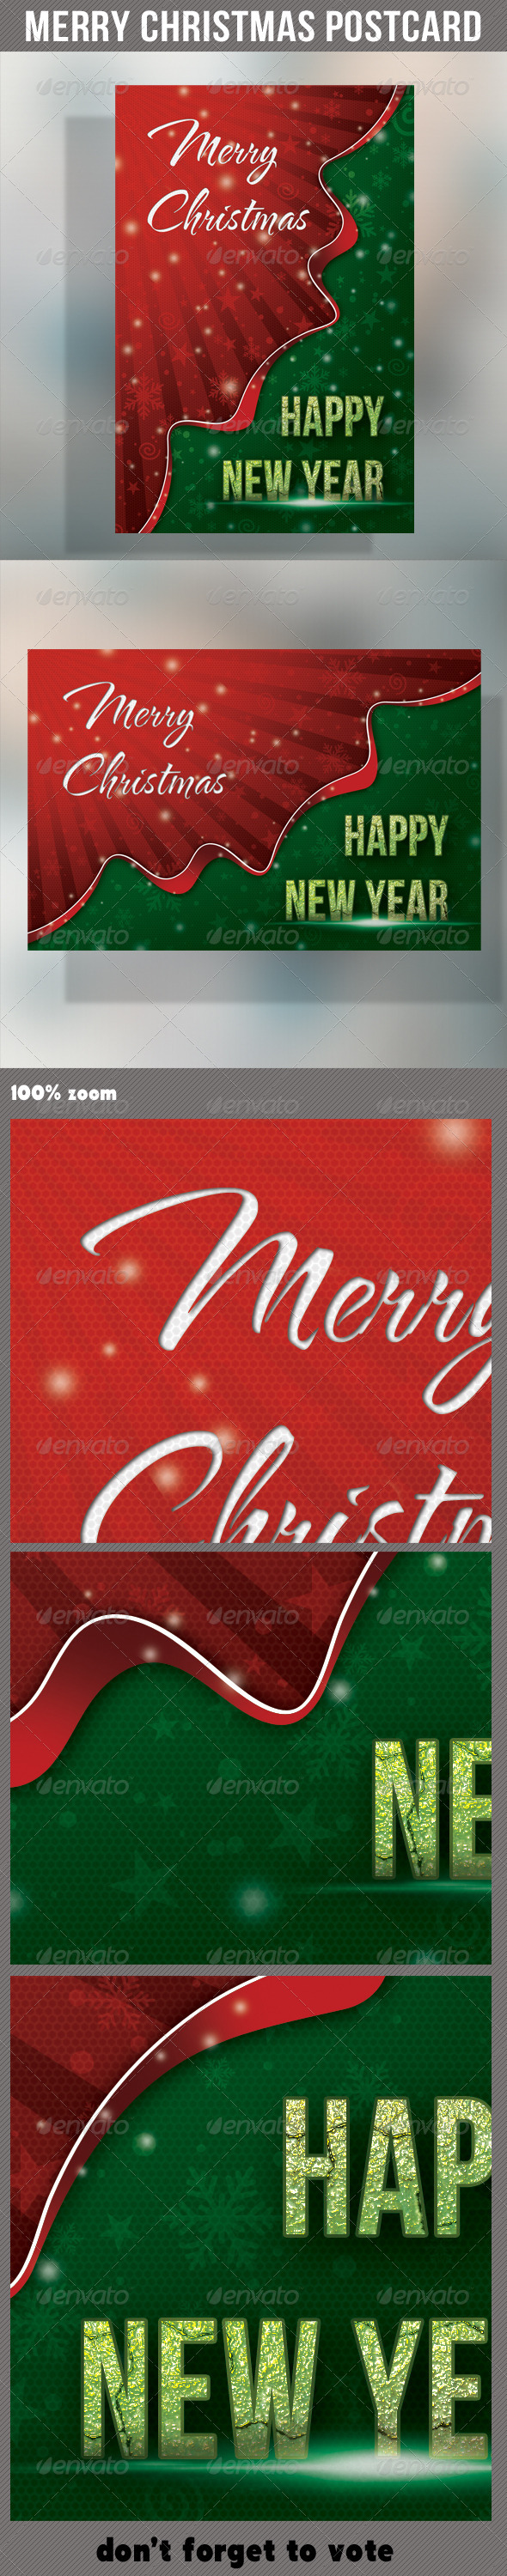 Merry Christmas Holidays Postcard - Holiday Greeting Cards